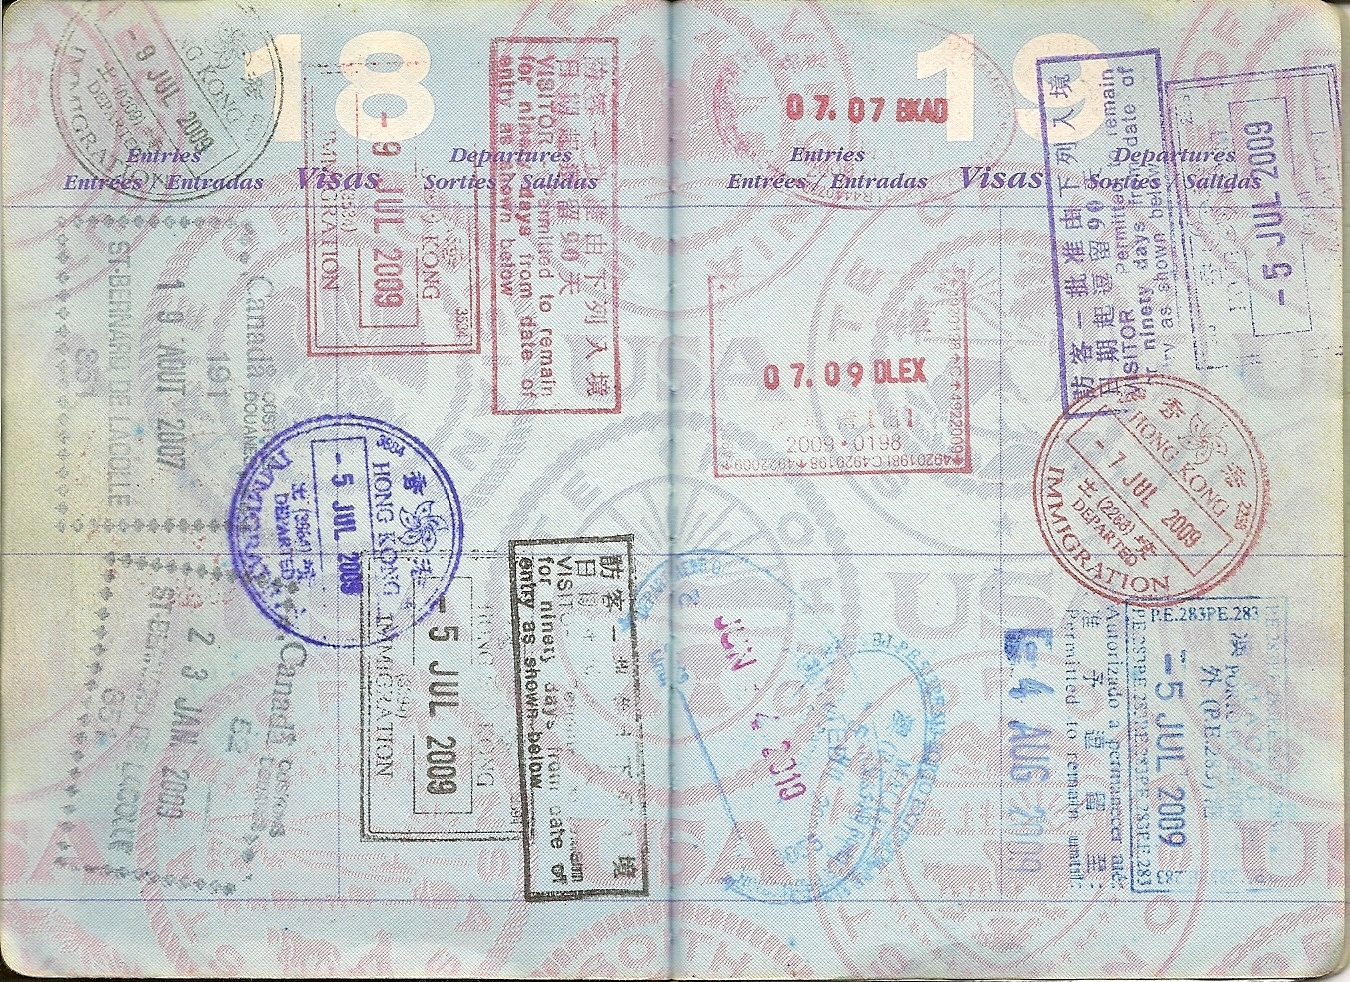 Canadian Passport Page | www.imgkid.com - The Image Kid ...